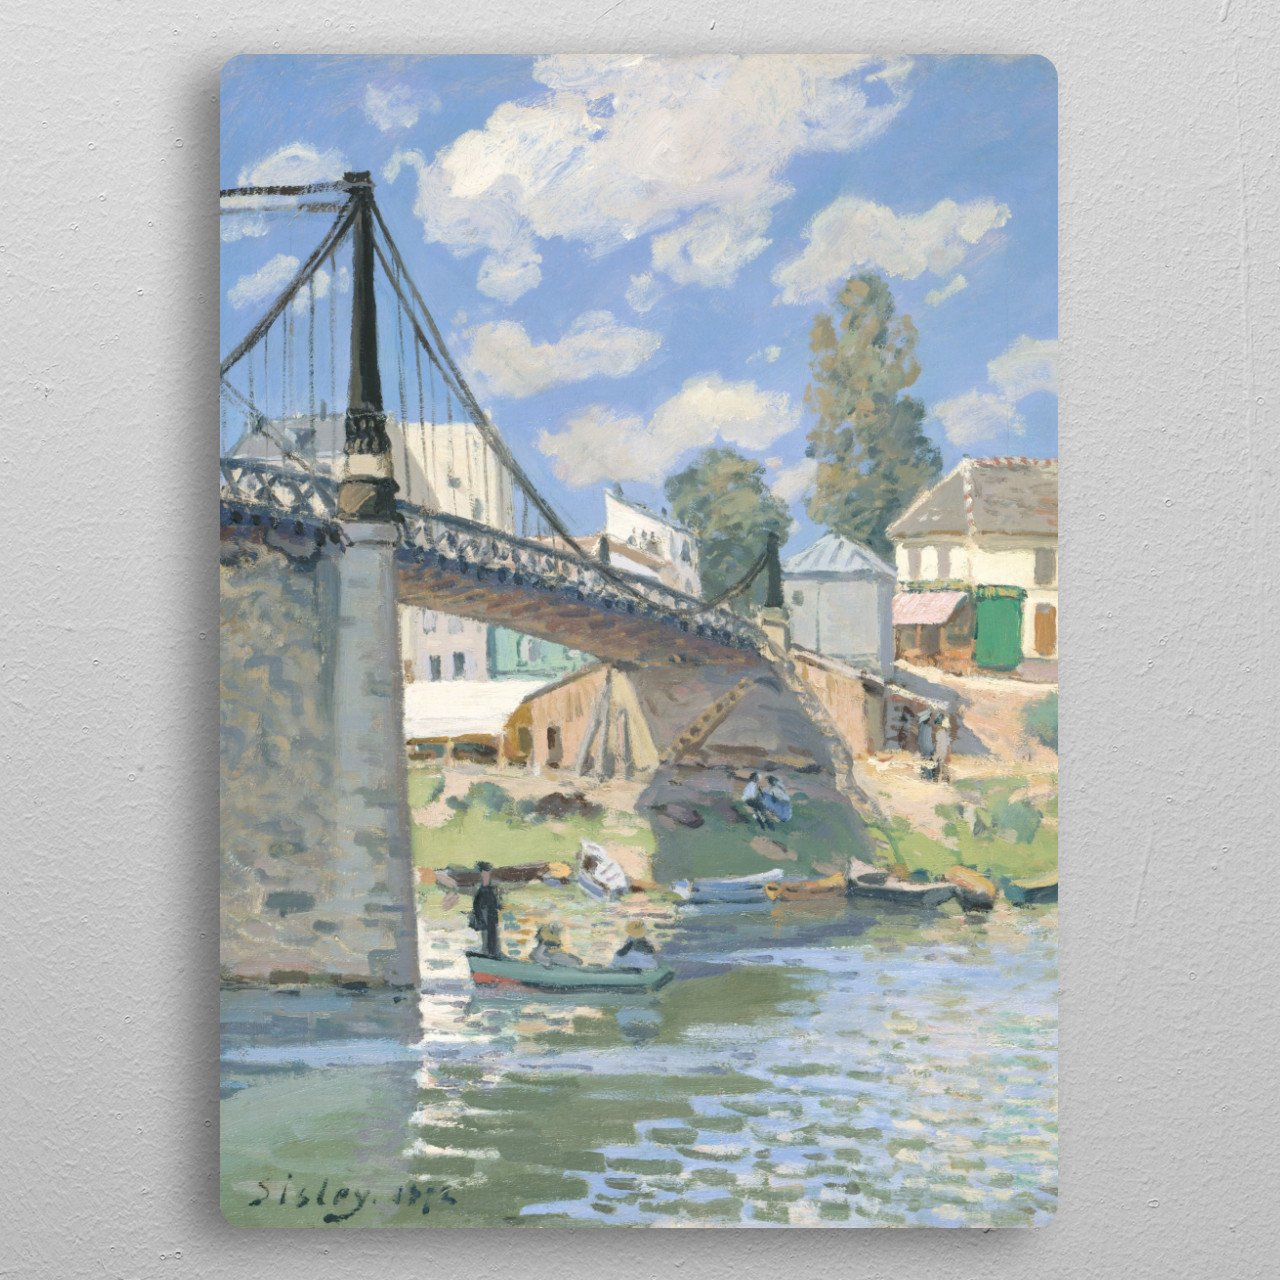 Alfred Sisley - The Bridge at Villeneuve-la-Garenne, 1872 oil on canvas; Collection of The Metropolitan Museum of Art in New York pocket-size metal print from Black box